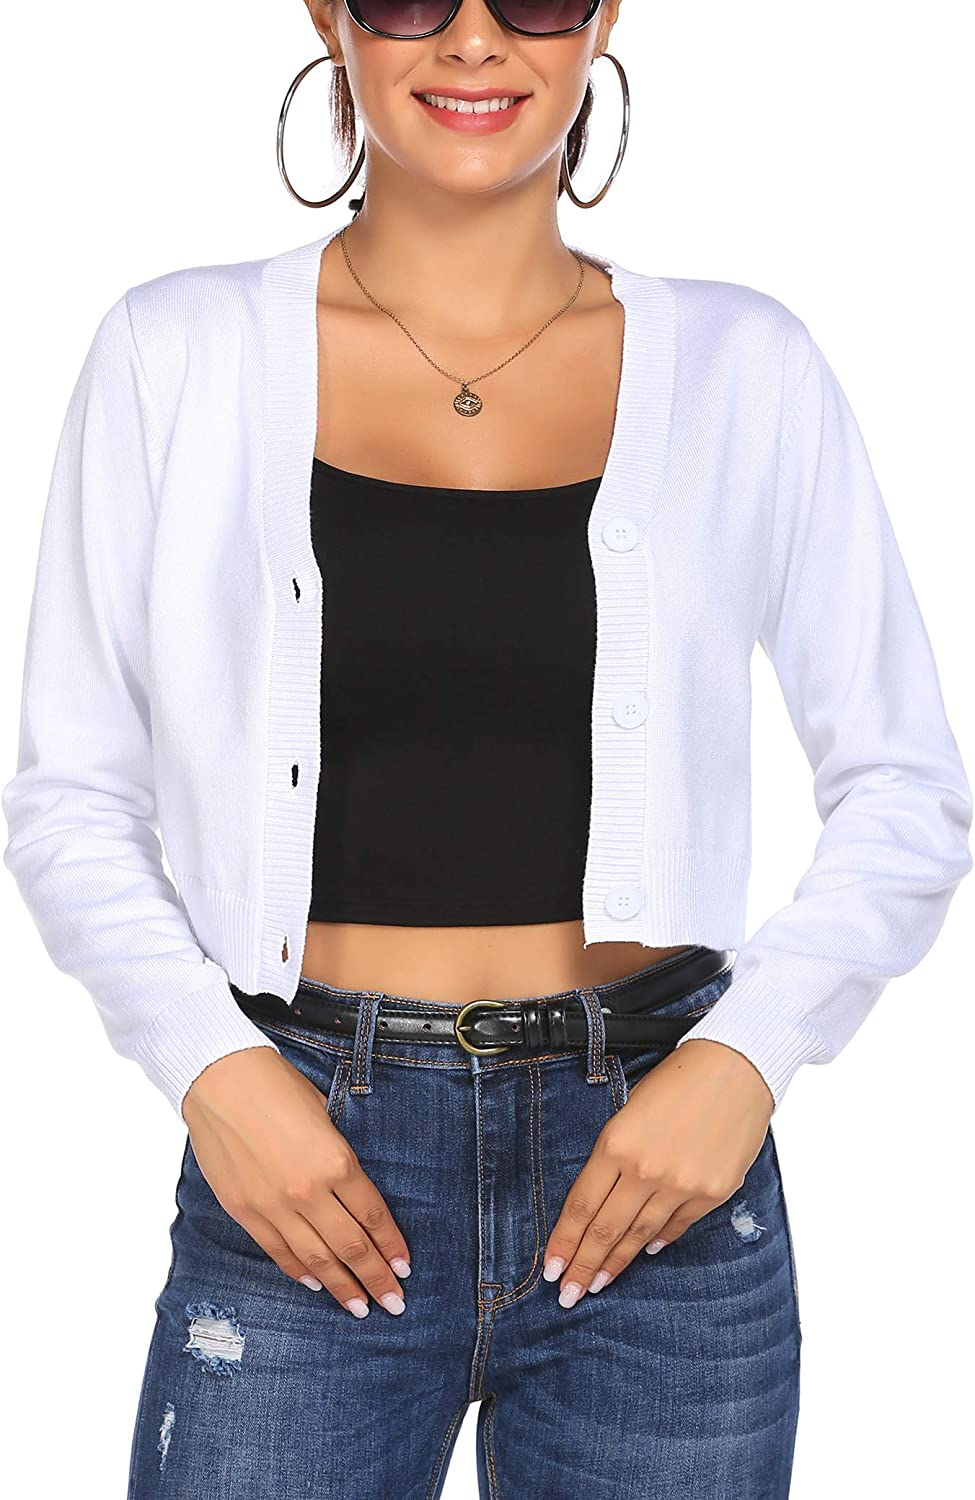 HOTLOOX Women's Long Sleeve Ribbed Cropped Cardigan V Neck Button Down Knitwear Shrug Jacket Sweater Tops S-XXL